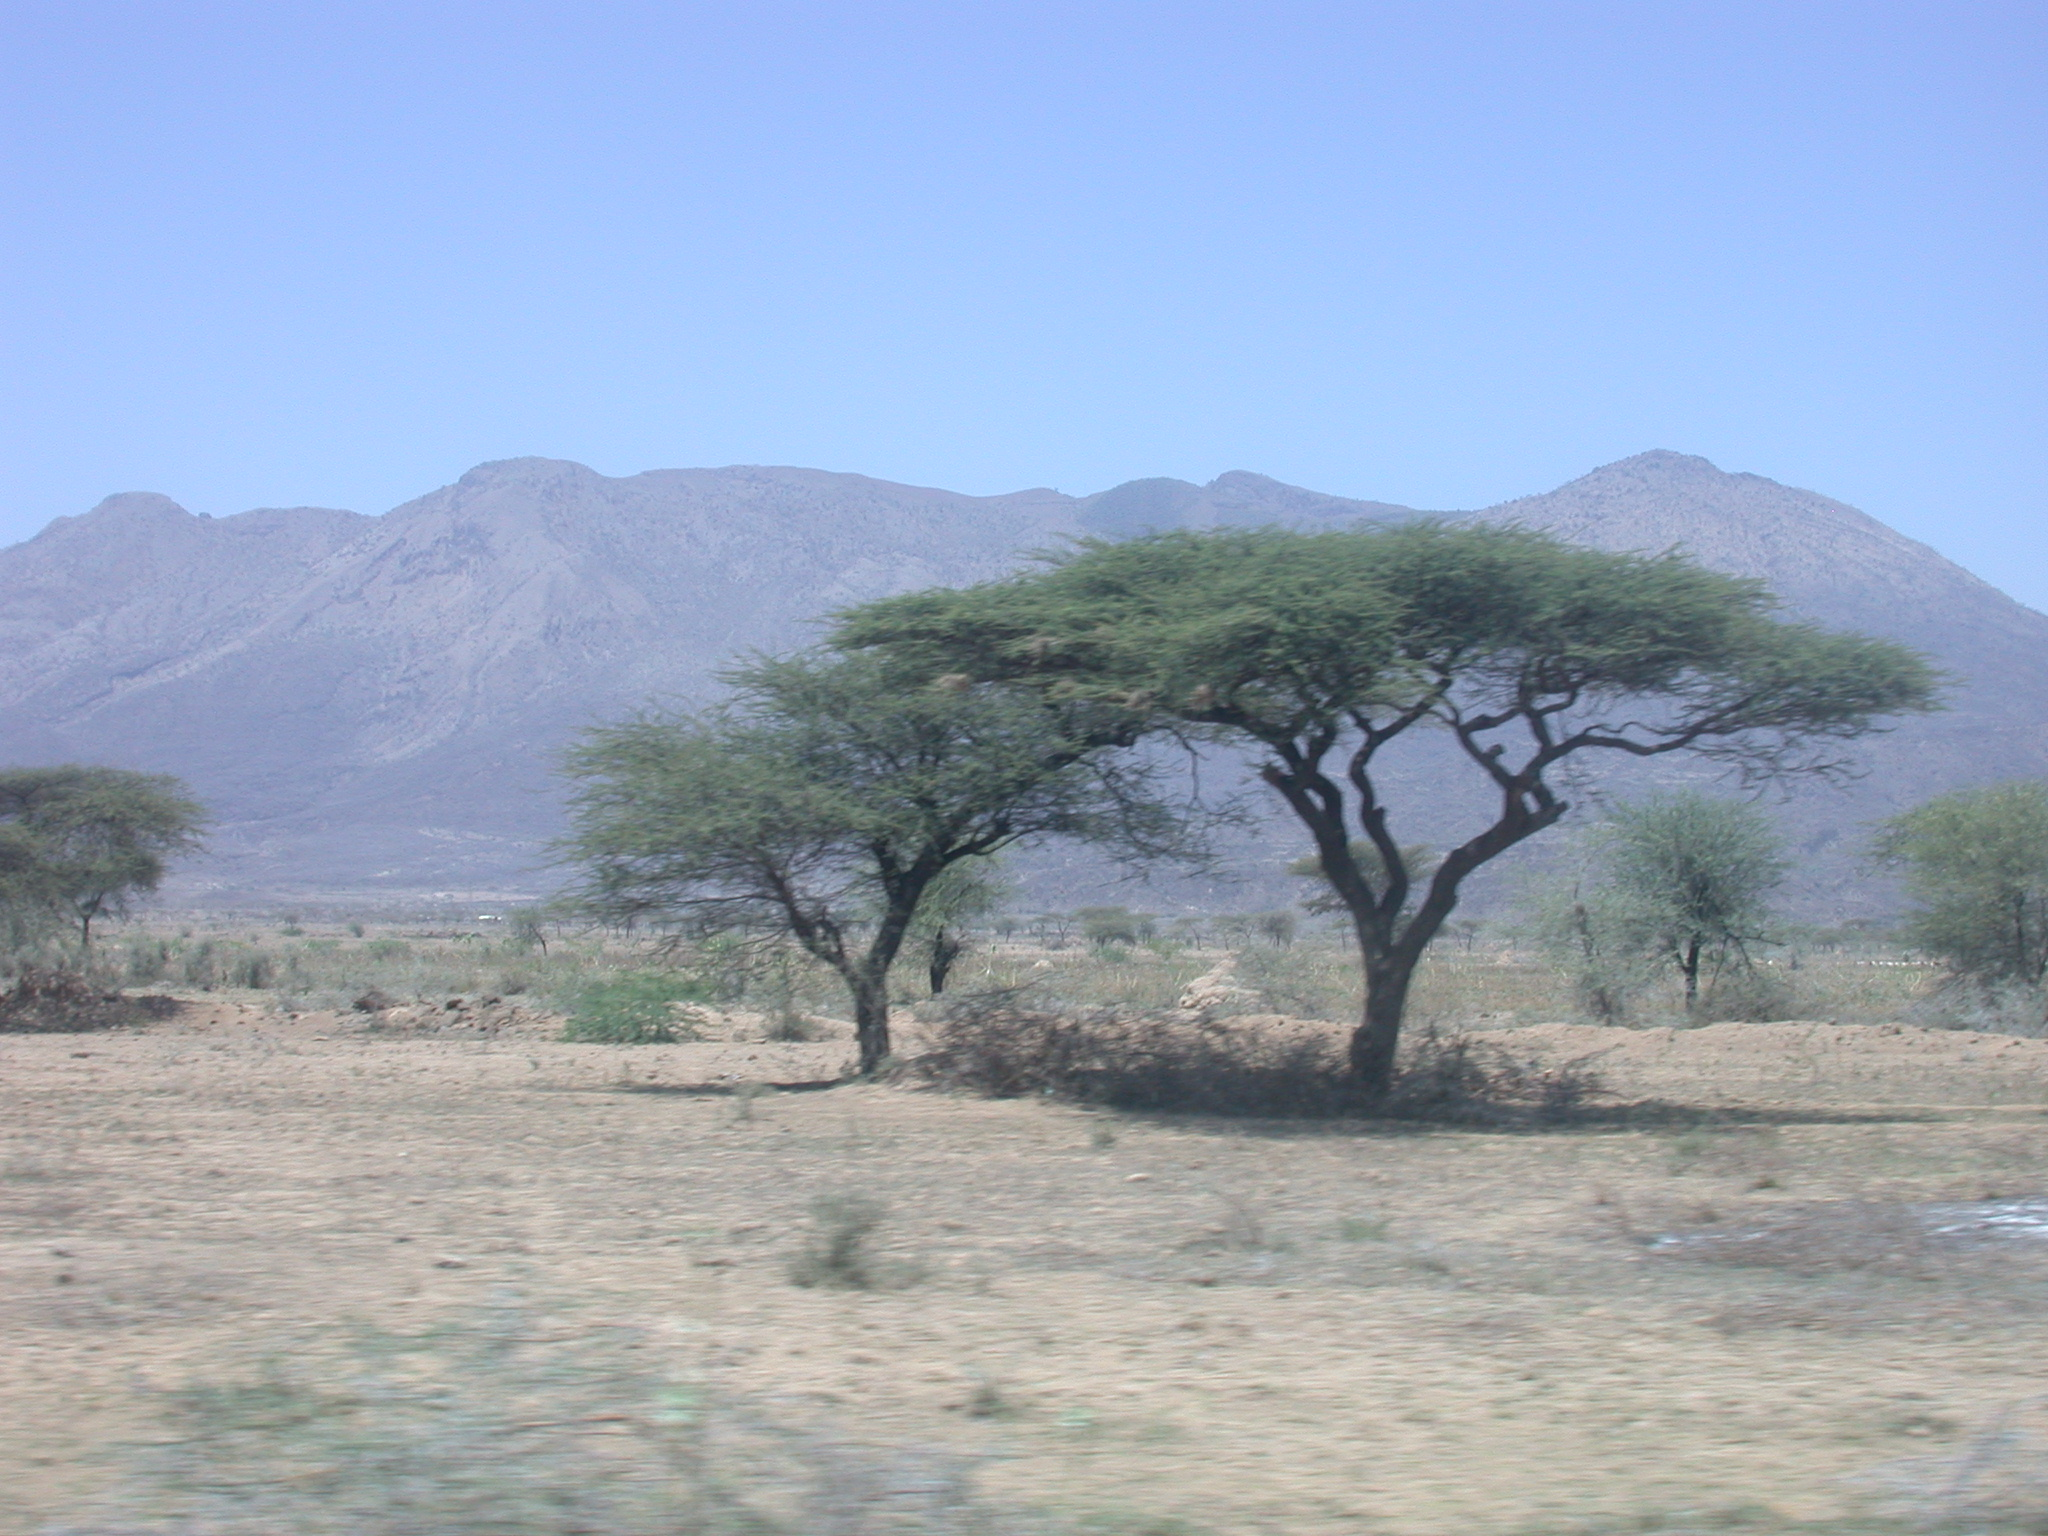 Landscape on Road From Awash Saba to Addis Ababa, Ethiopia